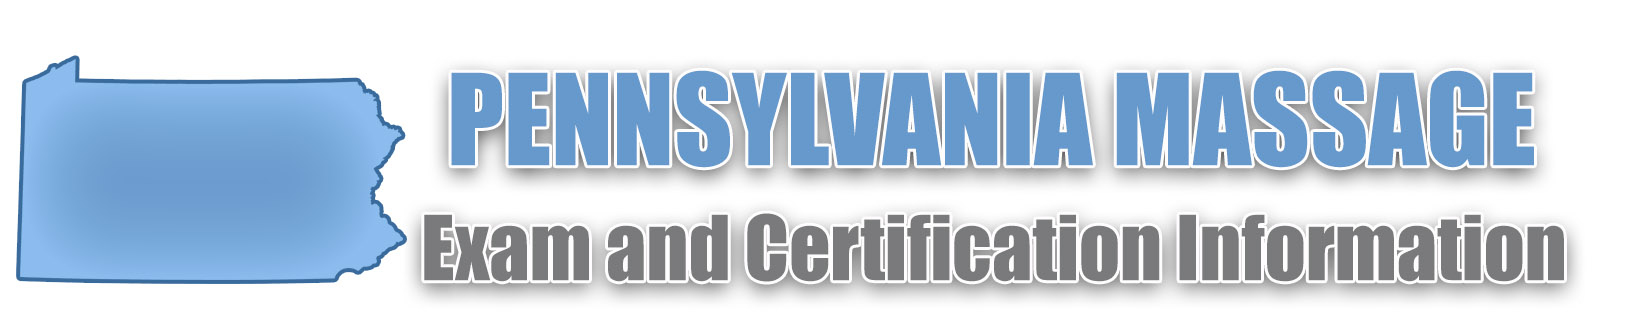 Pennsylvania MBLEX Massage Exam and Certification Information